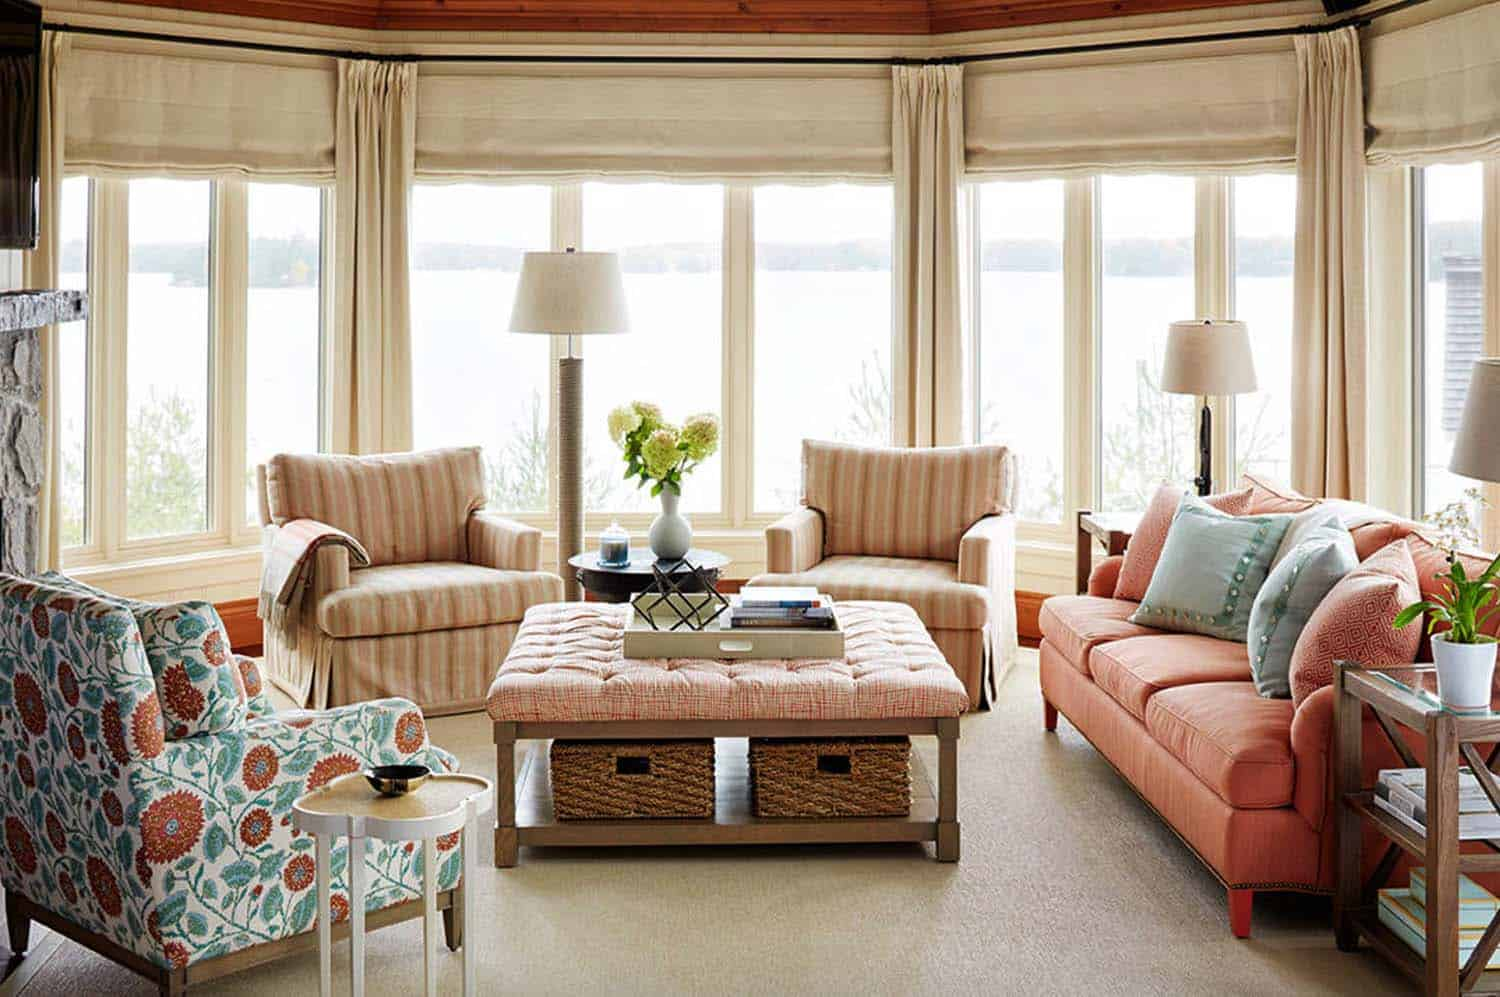 Lake Home Decor A Delightful Muskoka Lake House With A Soothing Ambiance